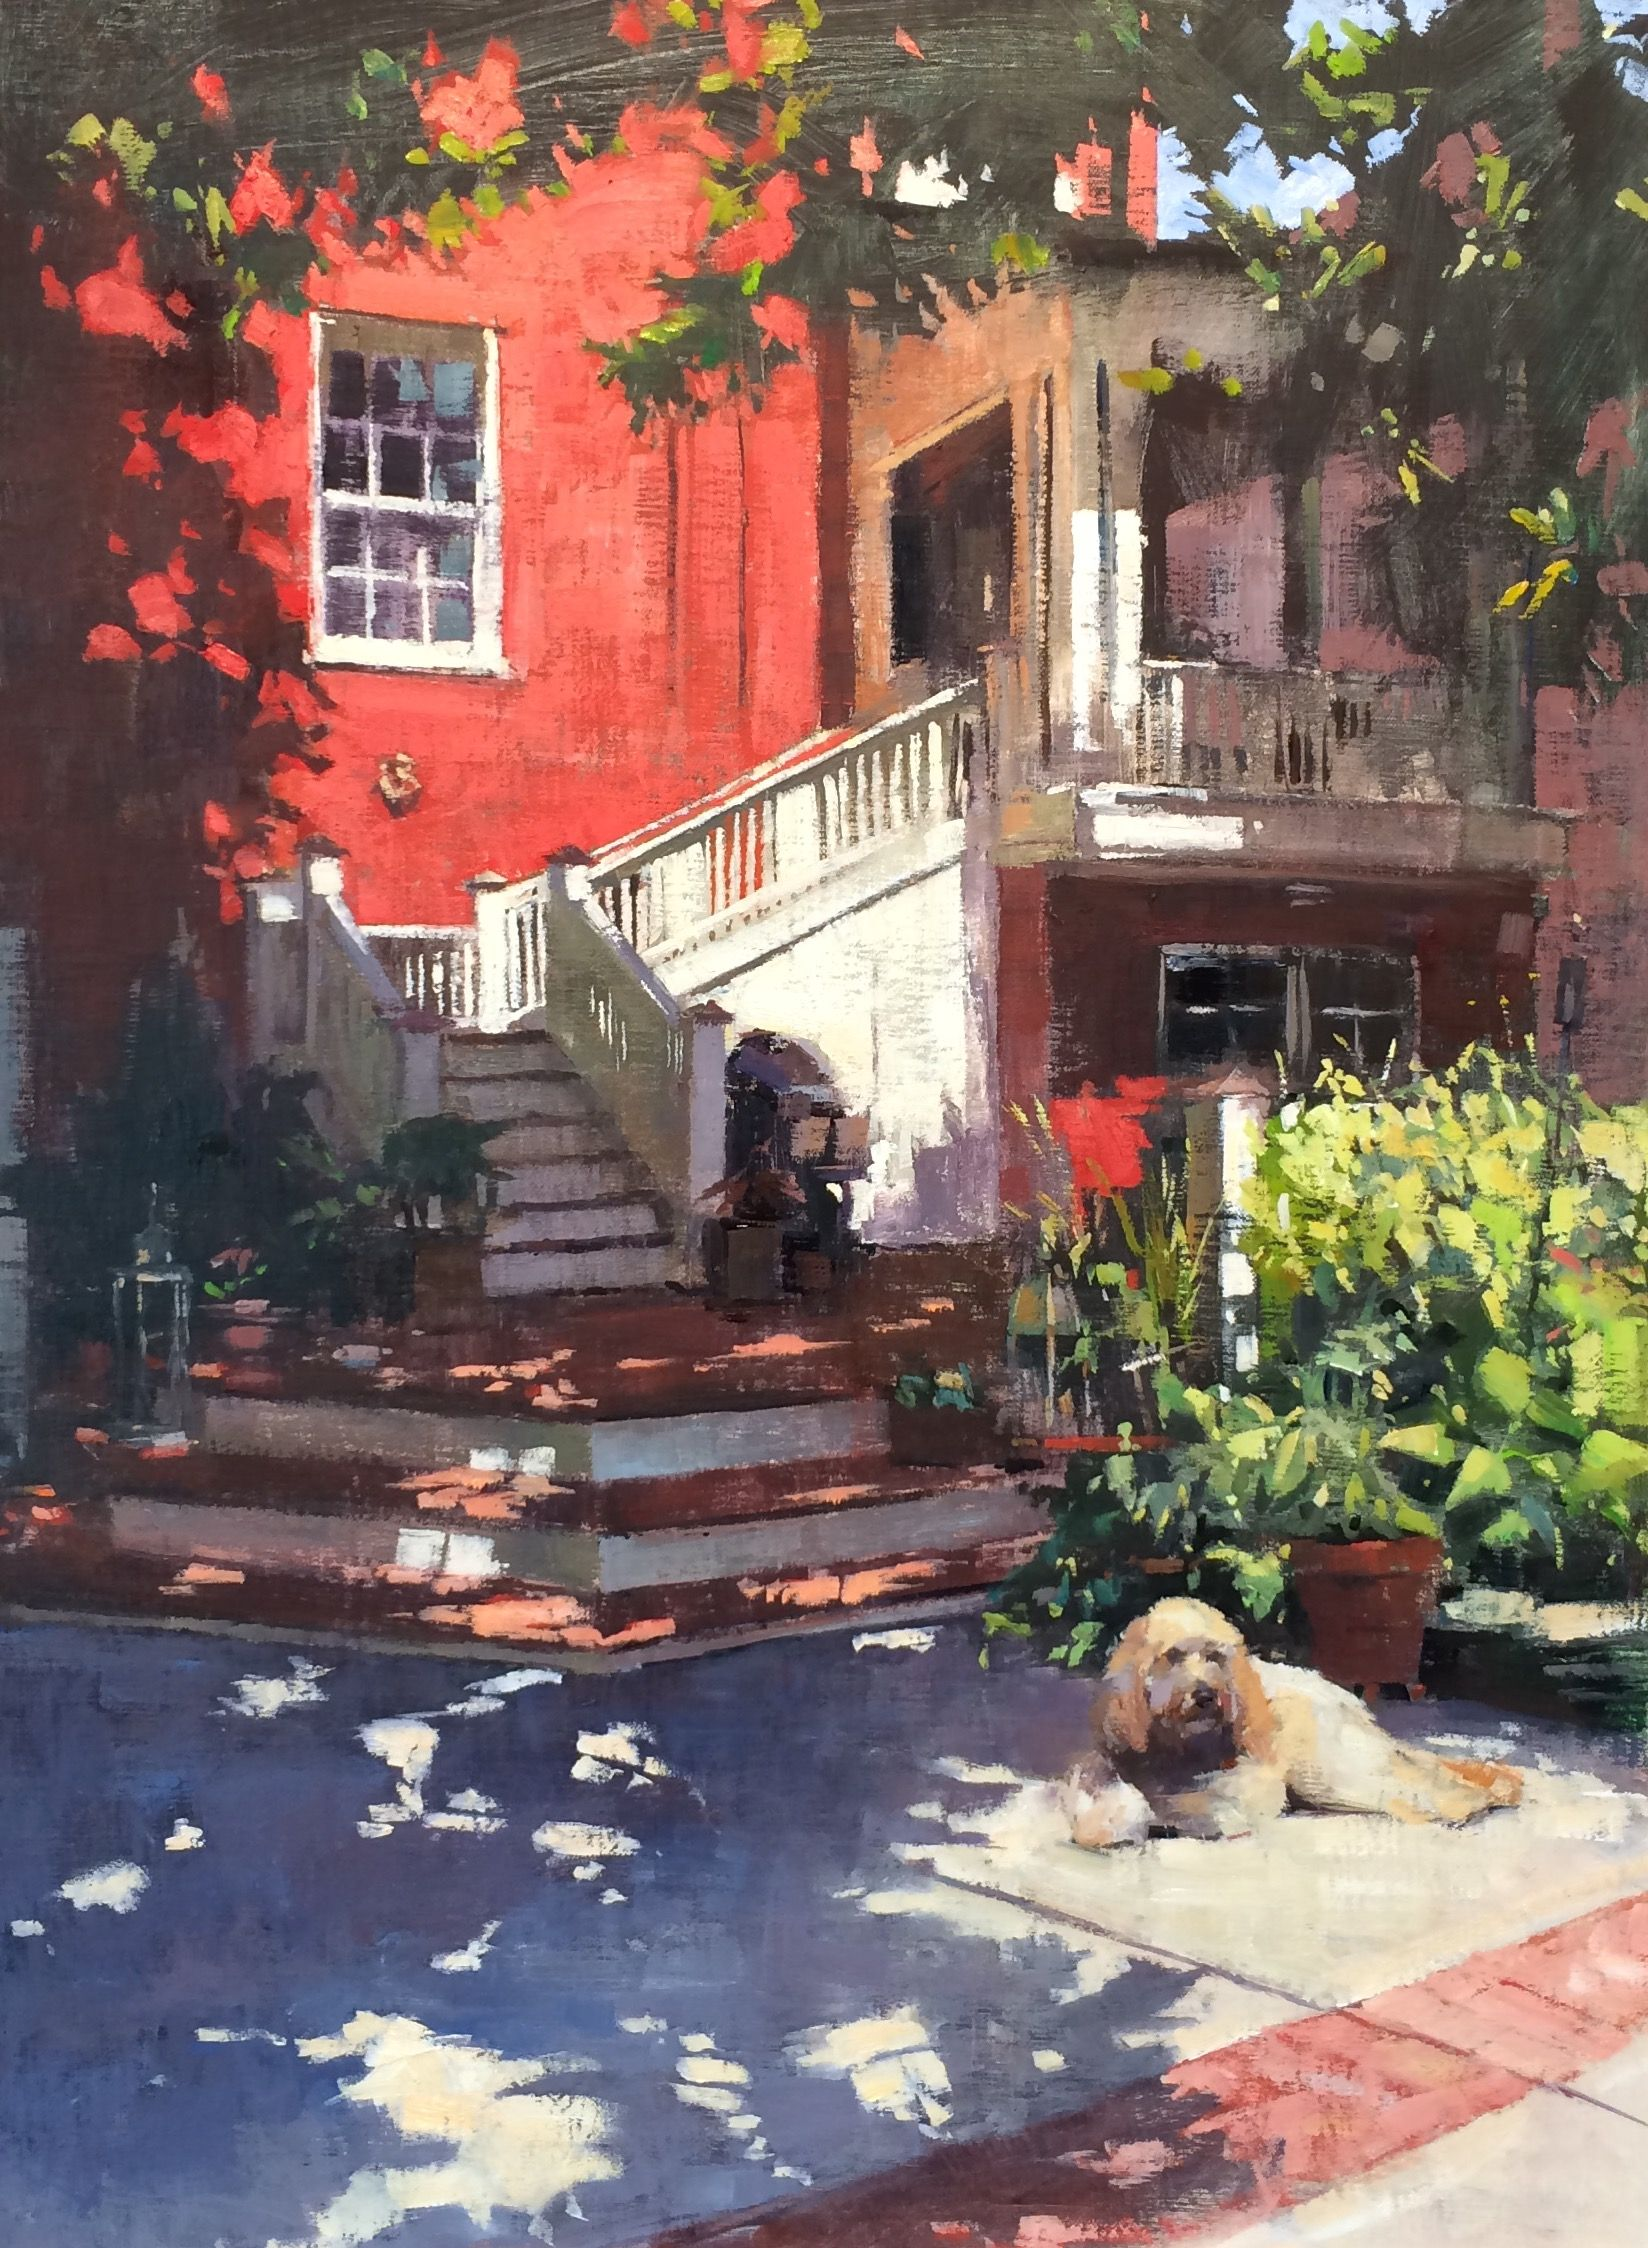 Reveling in Richmond Landscape paintings, Painting